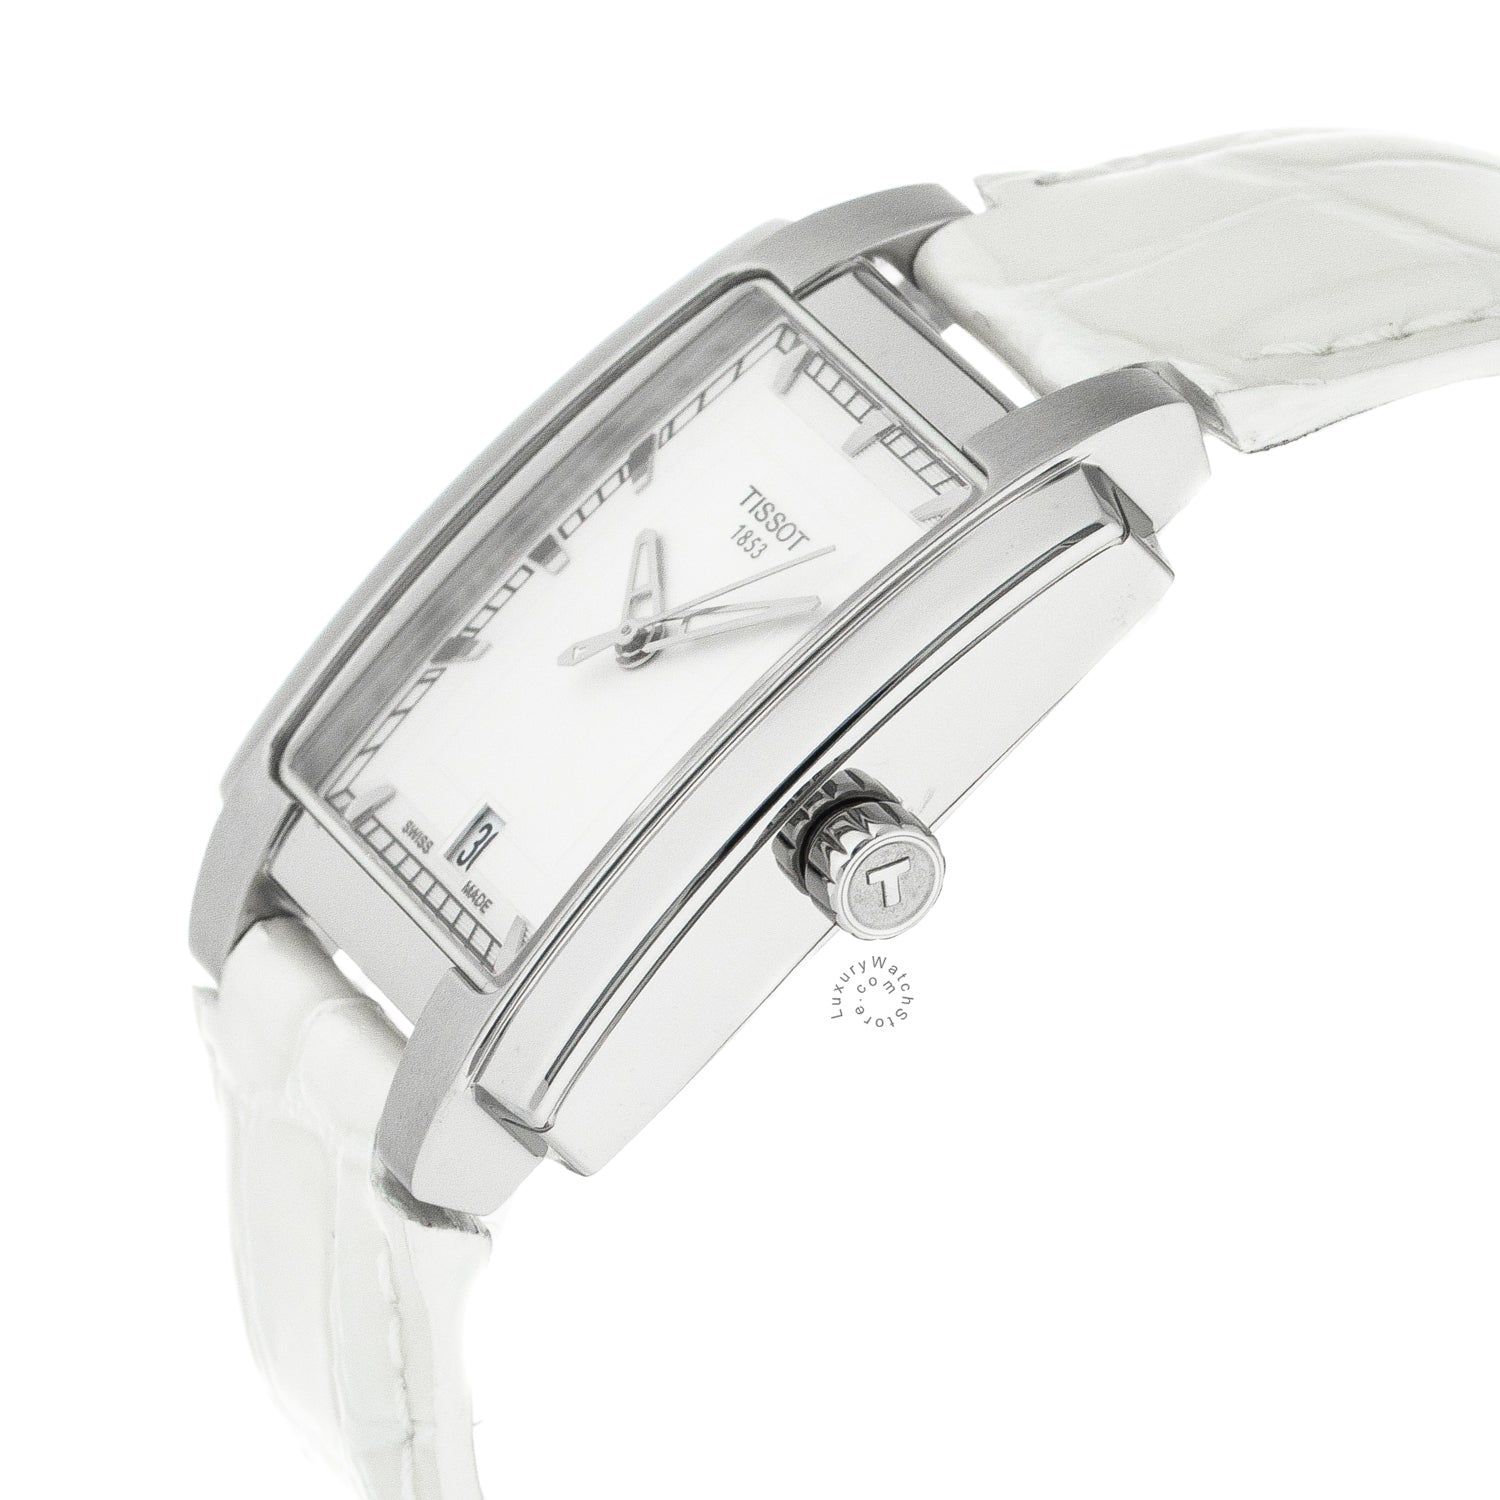 Tissot T-Trend TXL White Dial White Leather Women Watch T0613101603100